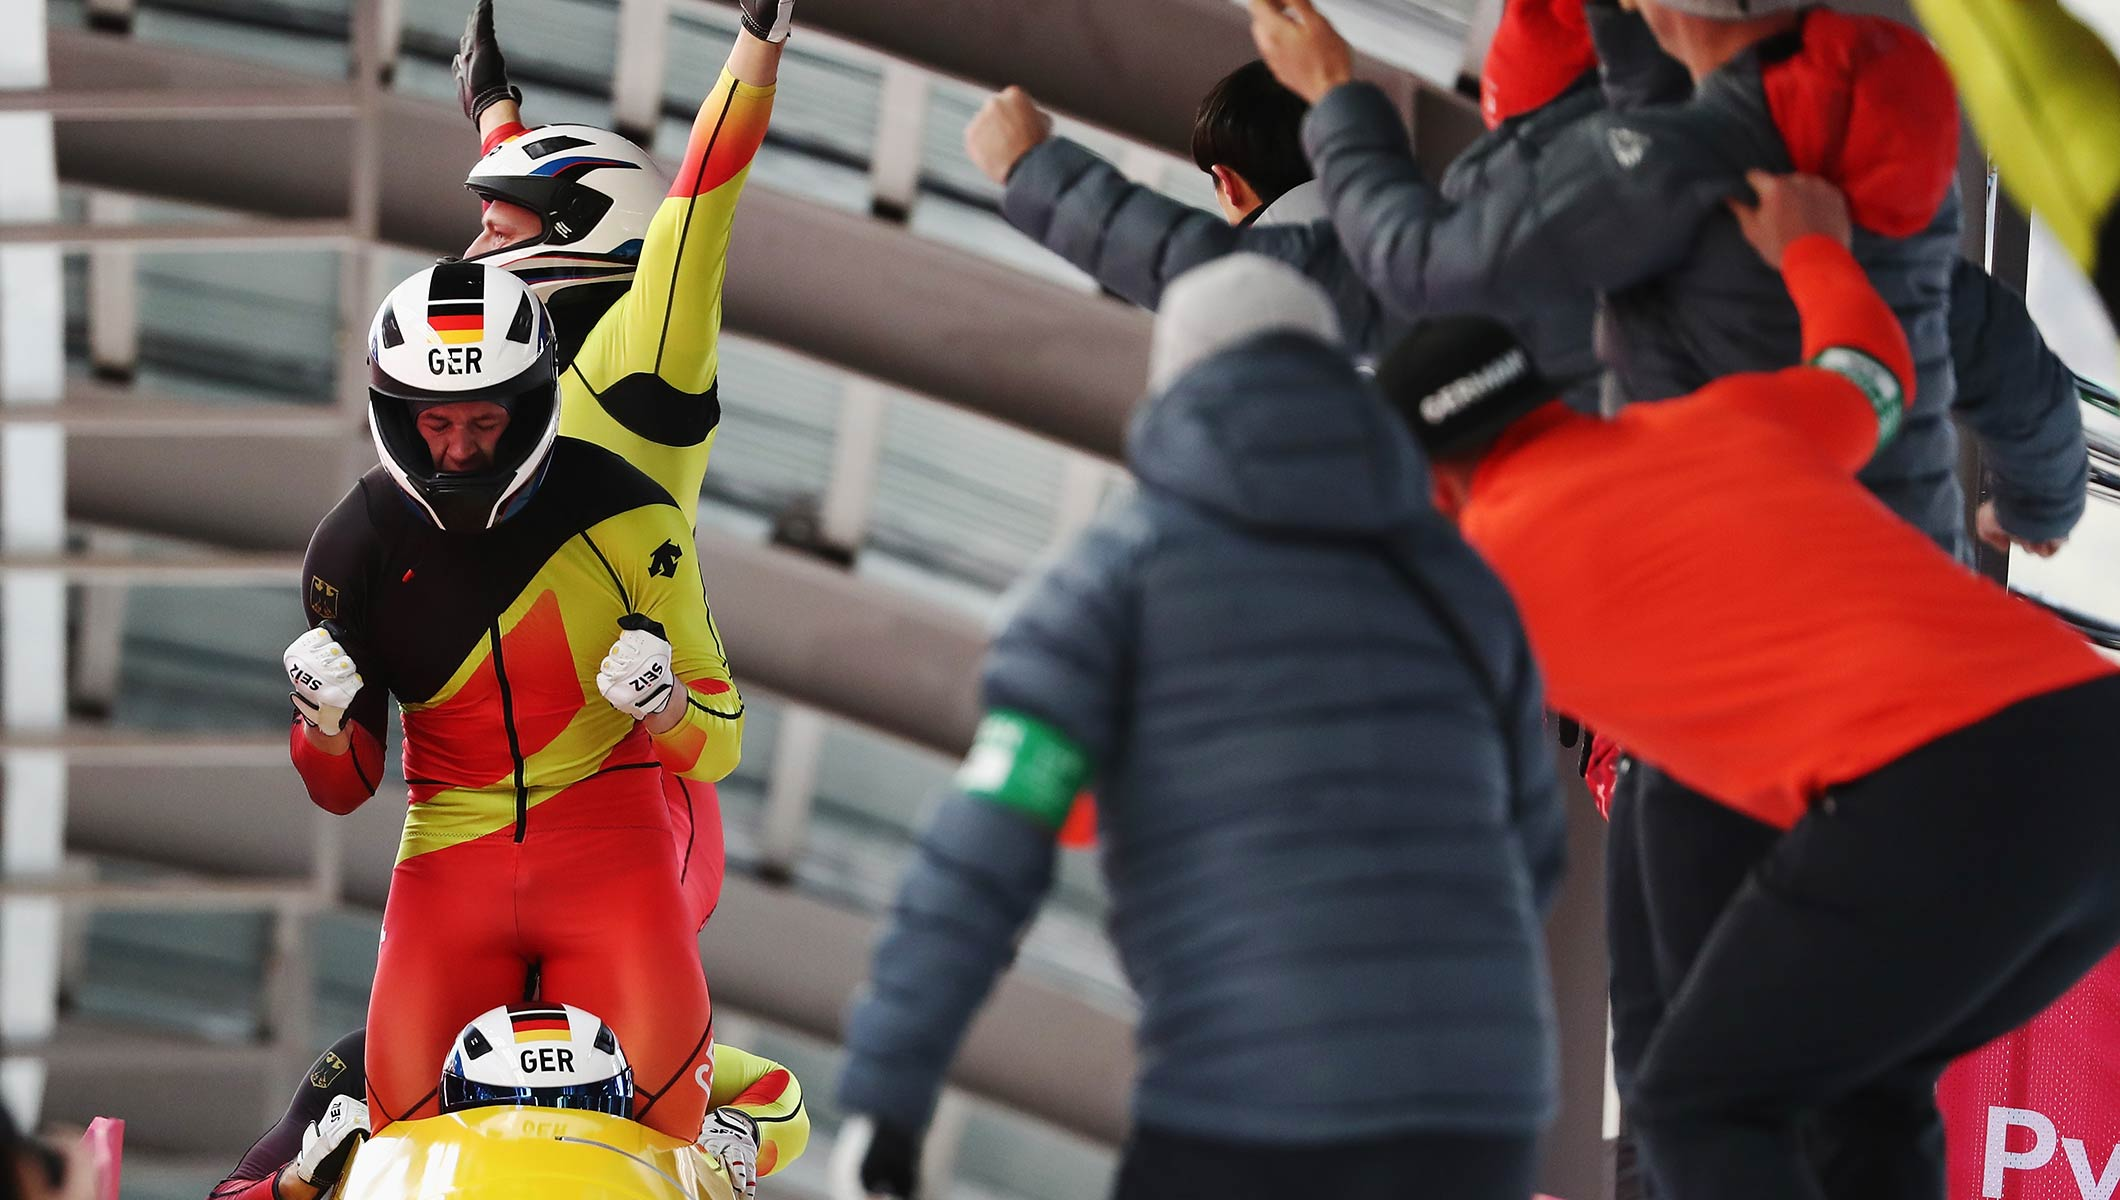 Bobsleigh winter olympic sport solutioingenieria Images